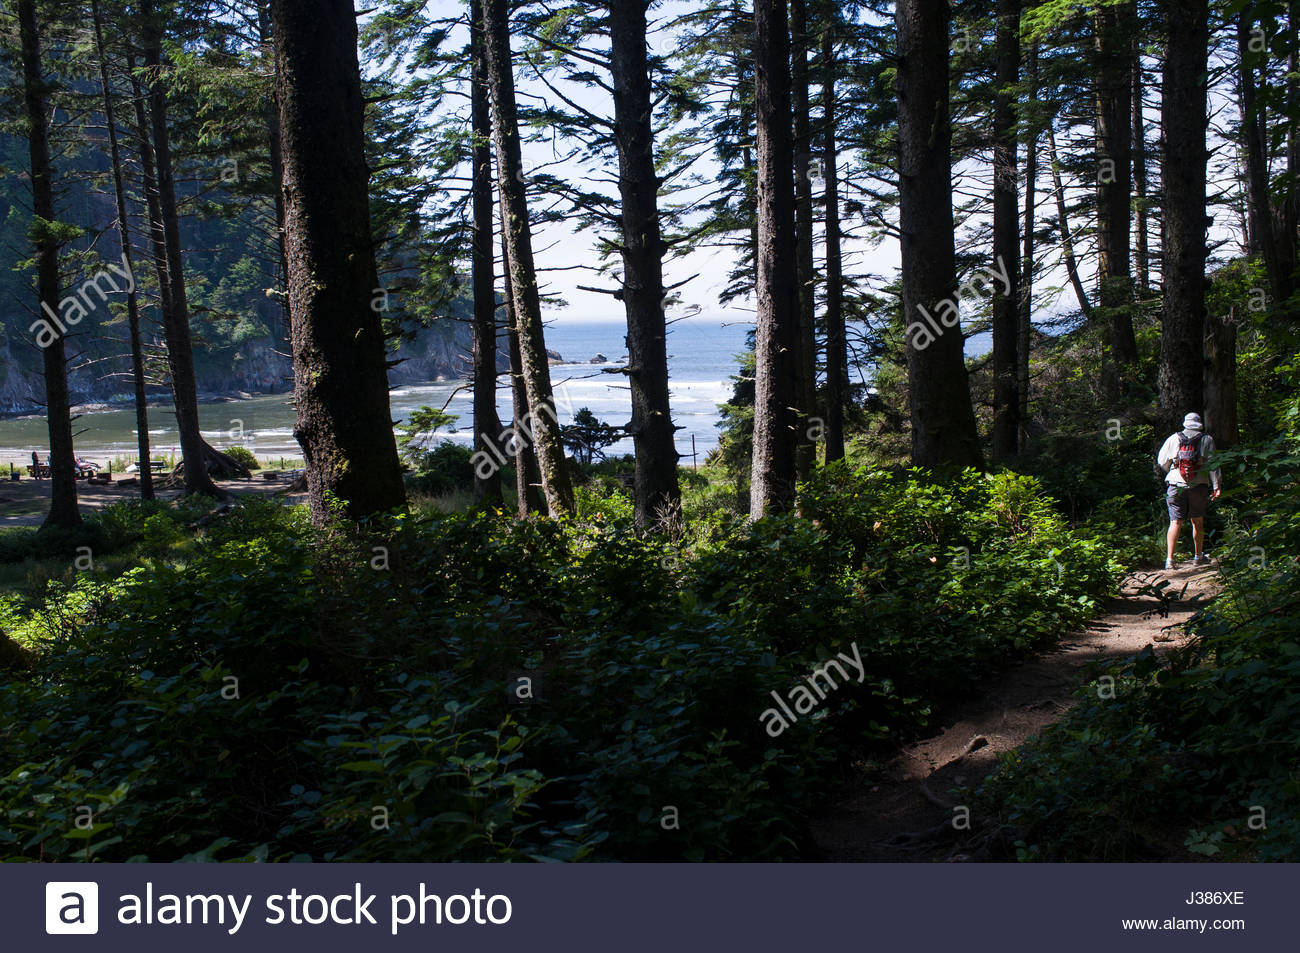 Short Sands Beach seen from Cape Falcon Trail, Oswald West State Park, Tillamook County, Oregon, USA - Stock Image